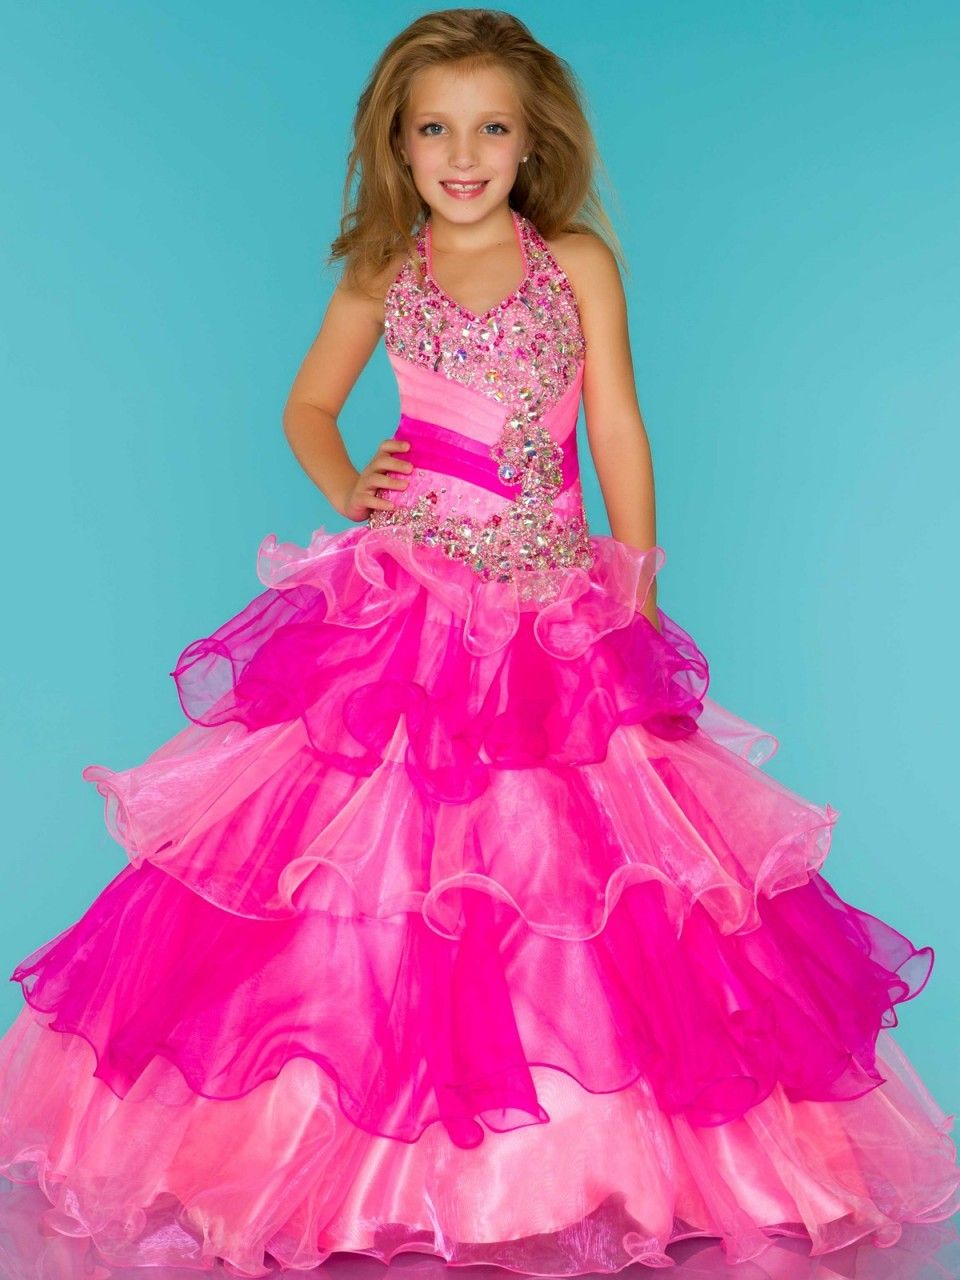 Sugar Glitz Pageant Dress 81807S  Girls pageant dresses Pageants ...